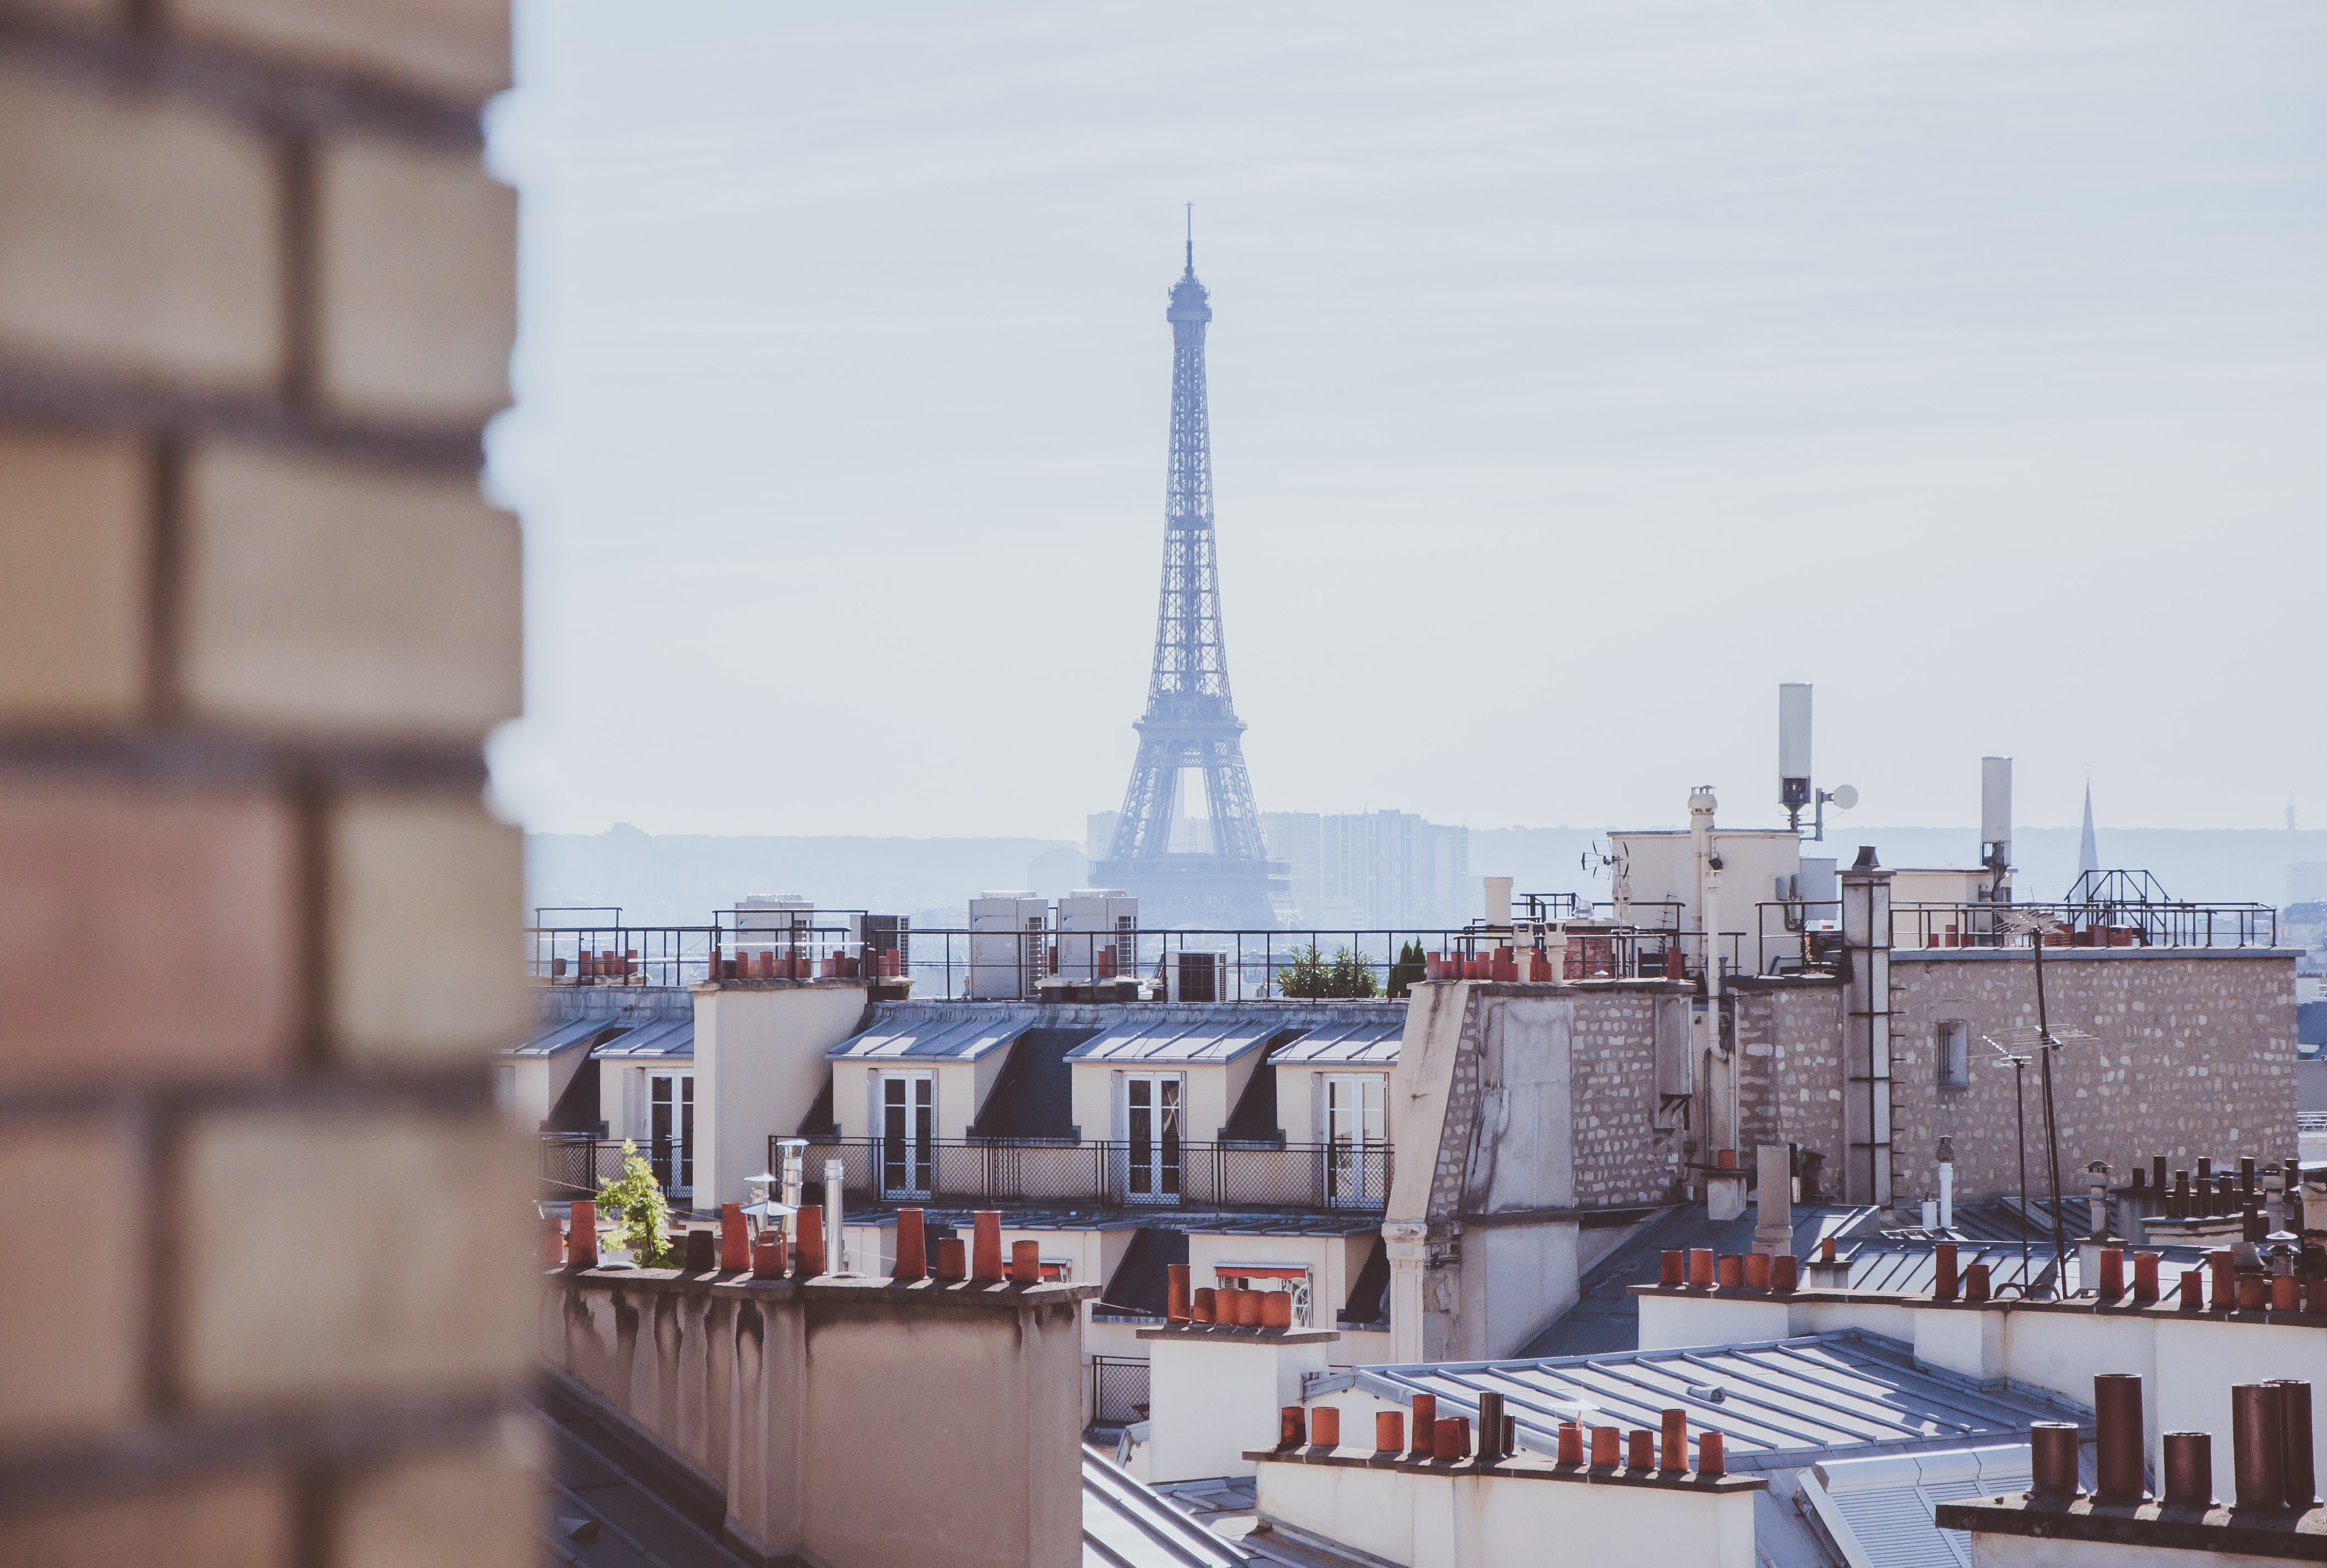 A rooftop view of brick chimney, buildings, and the Eiffel Tower in Paris, France.